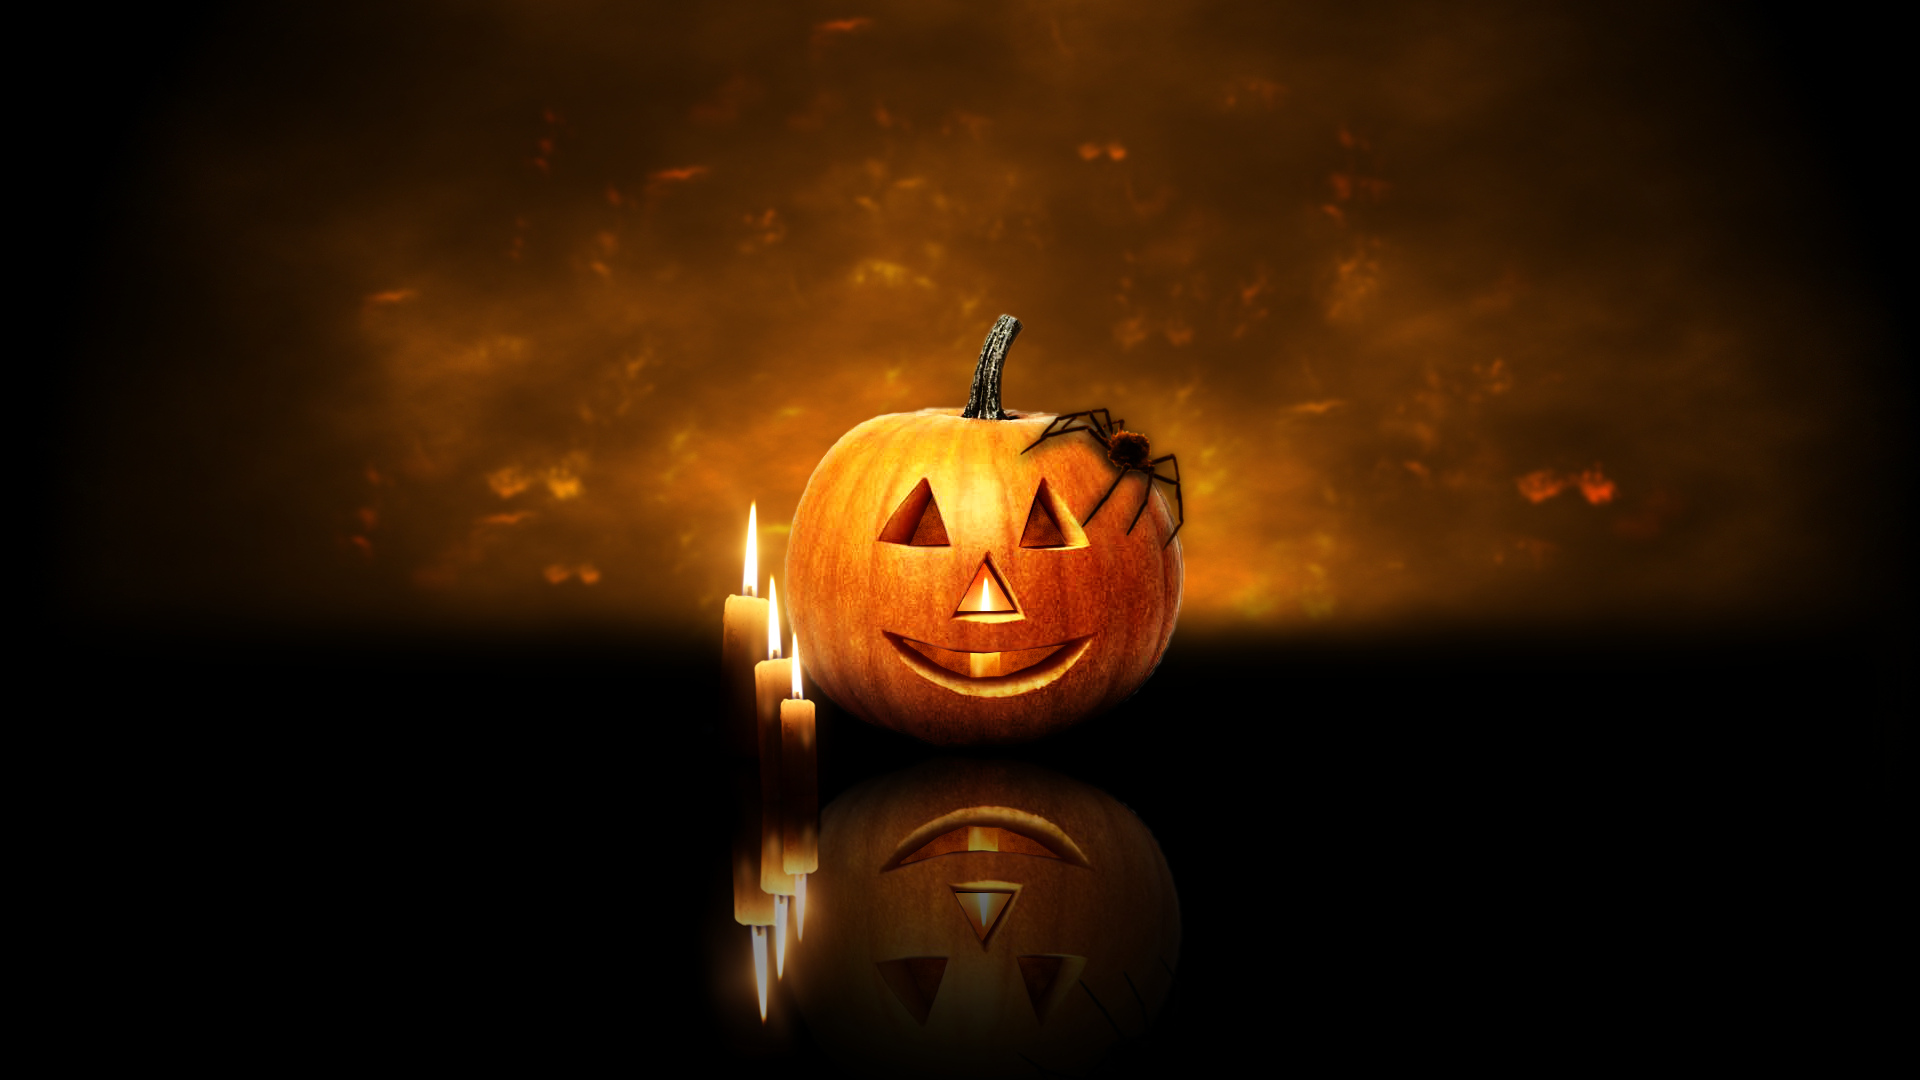 Scary Halloween 2012 HD Wallpapers Pumpkins Witches Spider Web 1920x1080